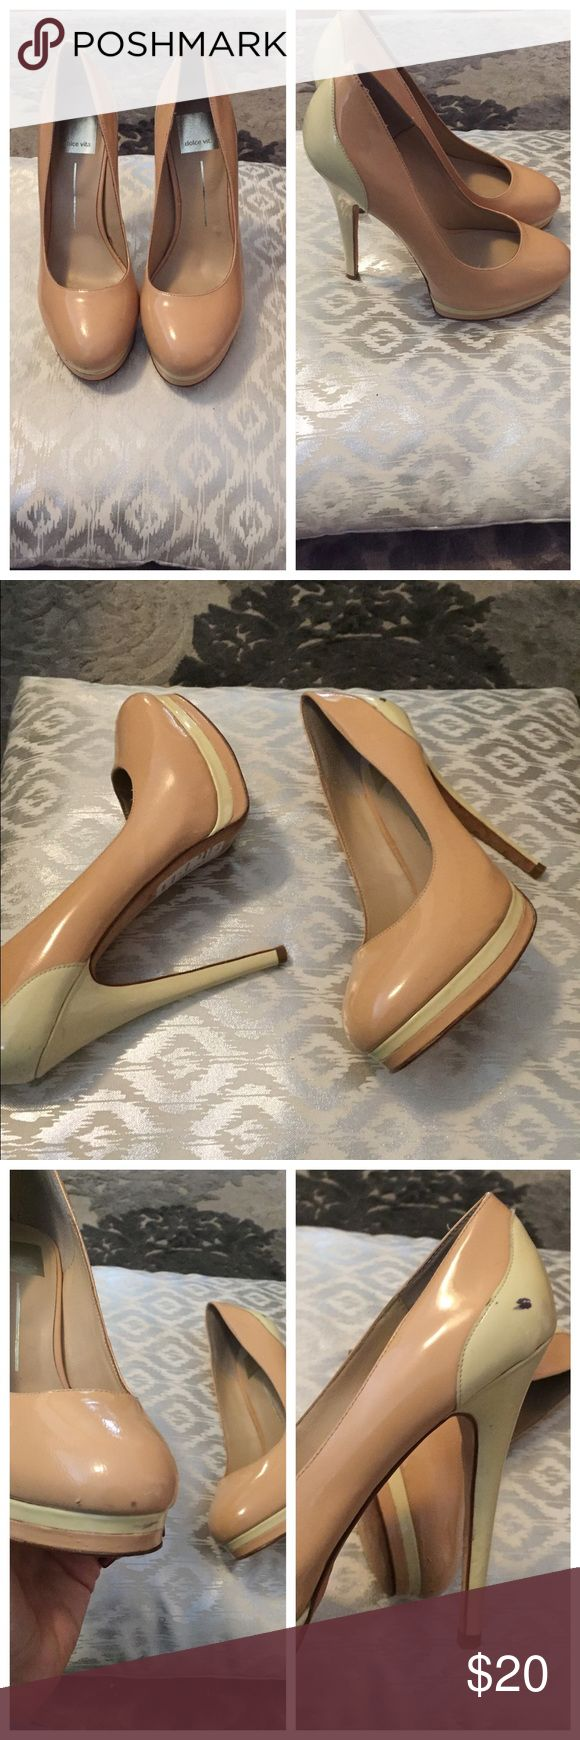 Dolce vita 2 tone nude high heels Platform high nude heels. Fell in love with these and sale price at saks off 5th outlet. Got the 8 bc they didn't have 81/2 and too small. Only worn once out of house. Slight imperfections shown in photo why priced so aggressively. Dolce Vita Shoes Heels